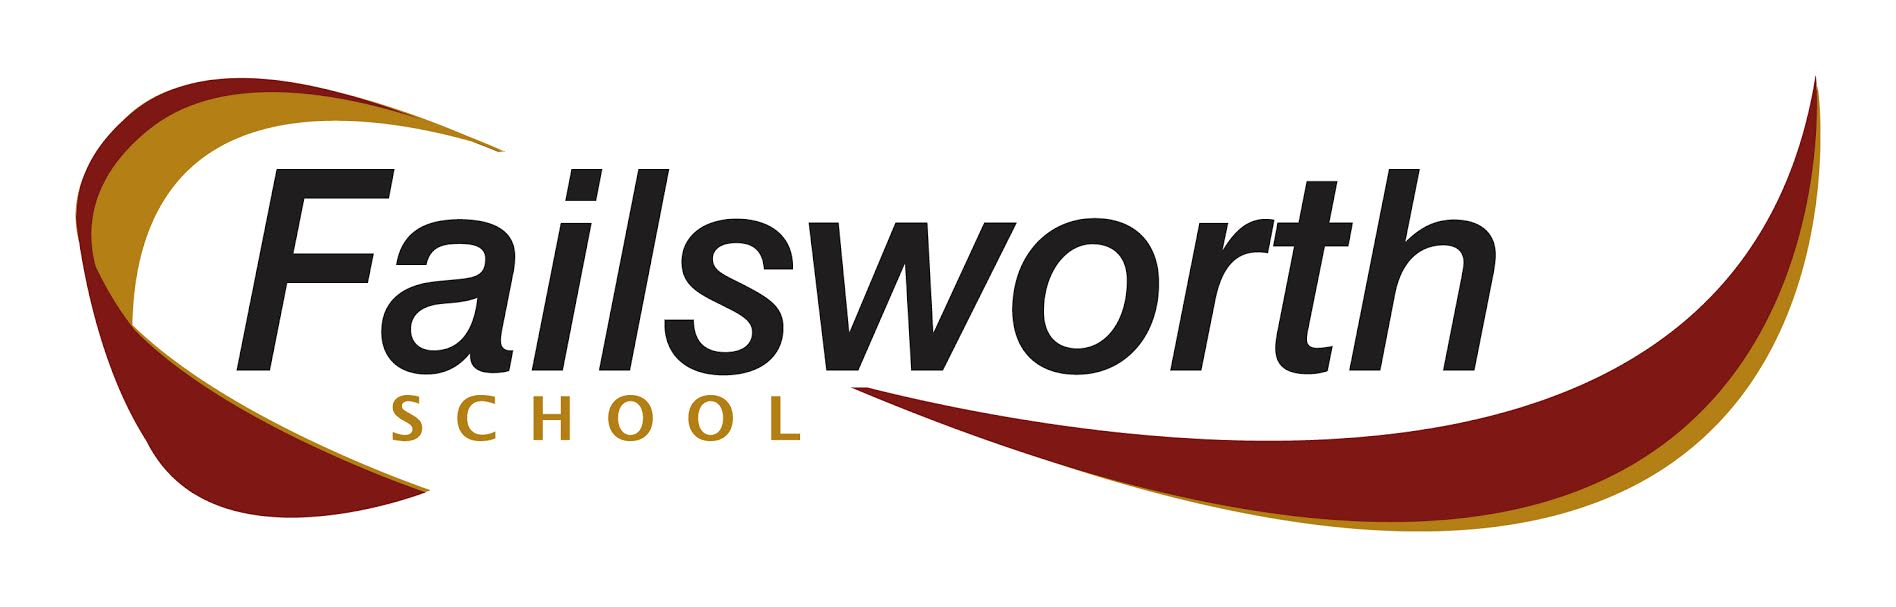 Failsworth School